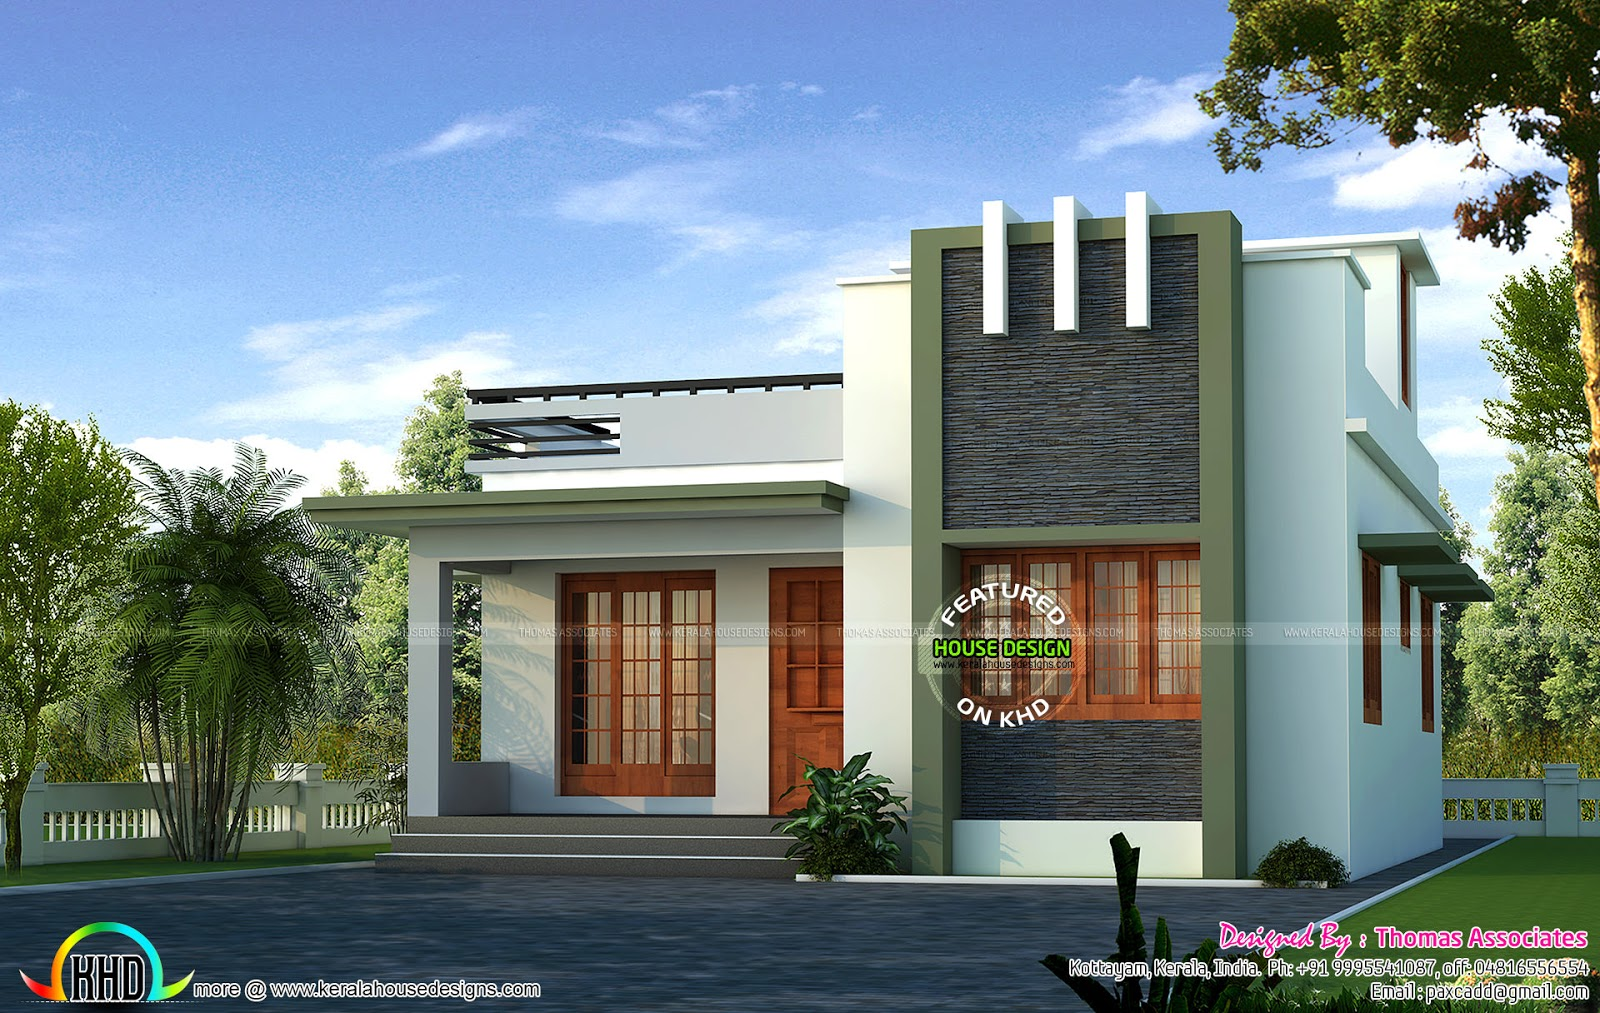 35 small and simple but beautiful house with roof deck for House gallery design